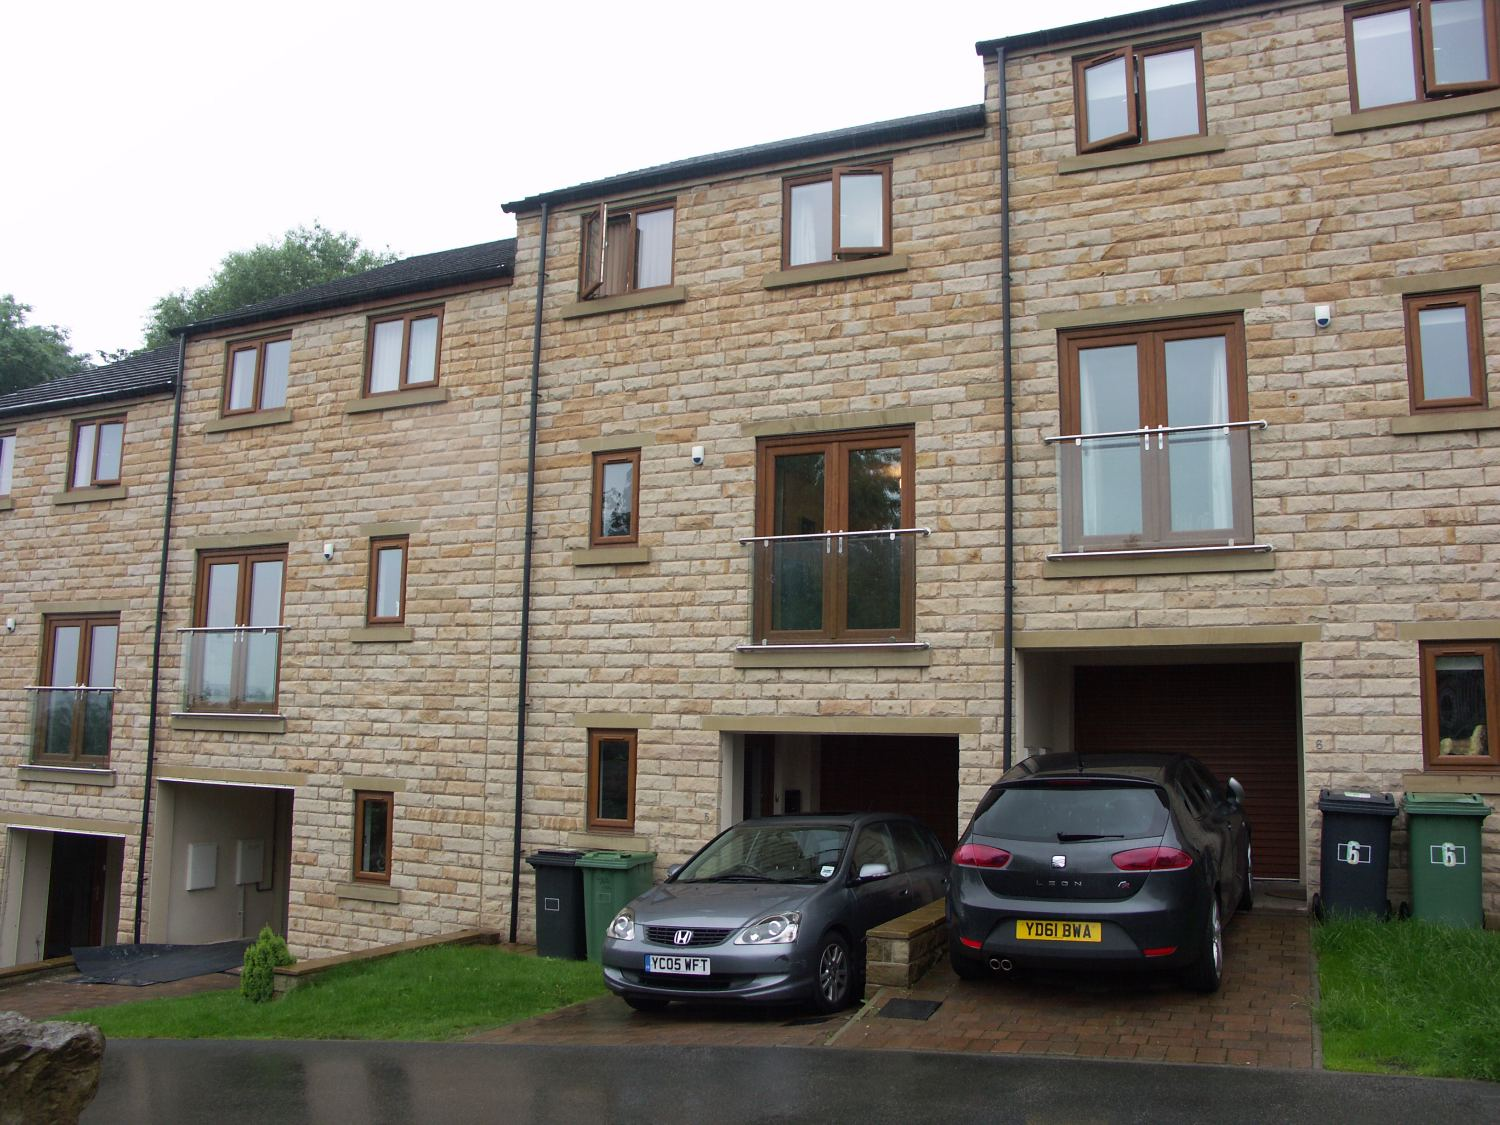 5 Thistle Heights, Huddersfield, HD8 0GN